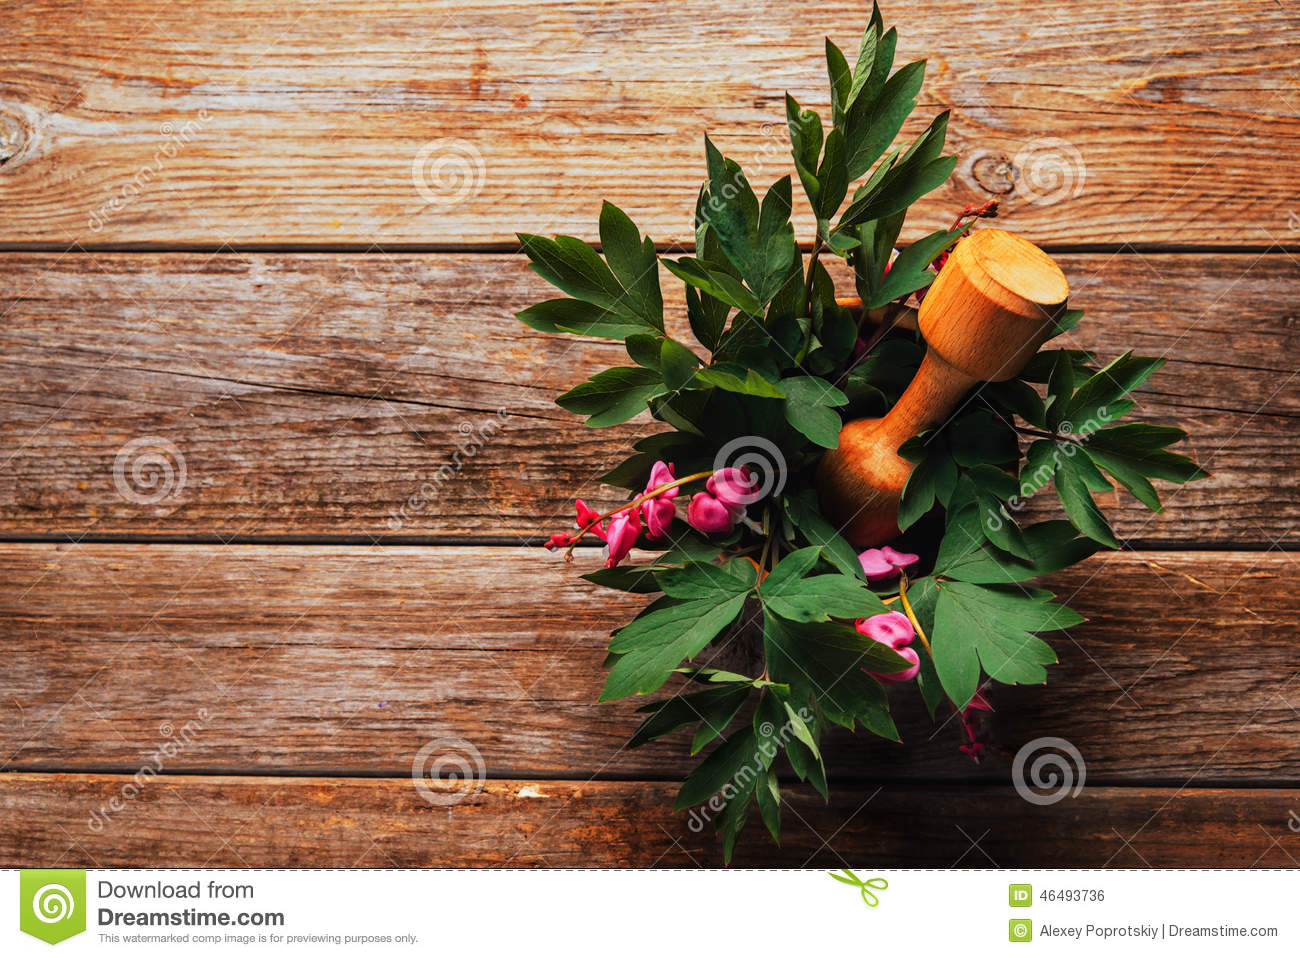 Flowers Bleeding Heart In Mortar With Pestle Stock Photo - Image of ...